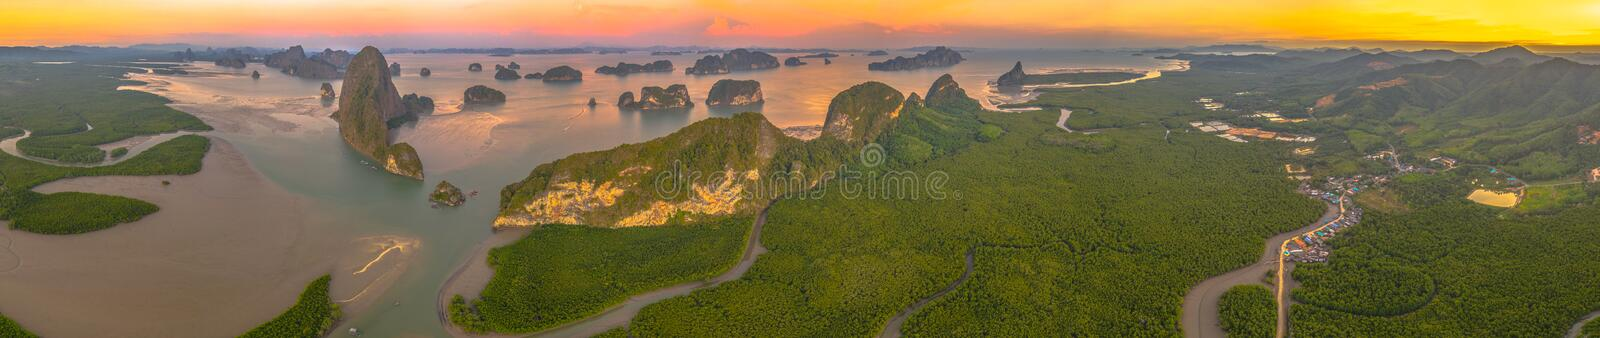 Aerial top view Baan Hinrom pier in mangrove forest at Samed Nangshe archipelago in Phang Nga Thailand. Aerial panorama view sunset at Samed Nangshe archipelago stock photography